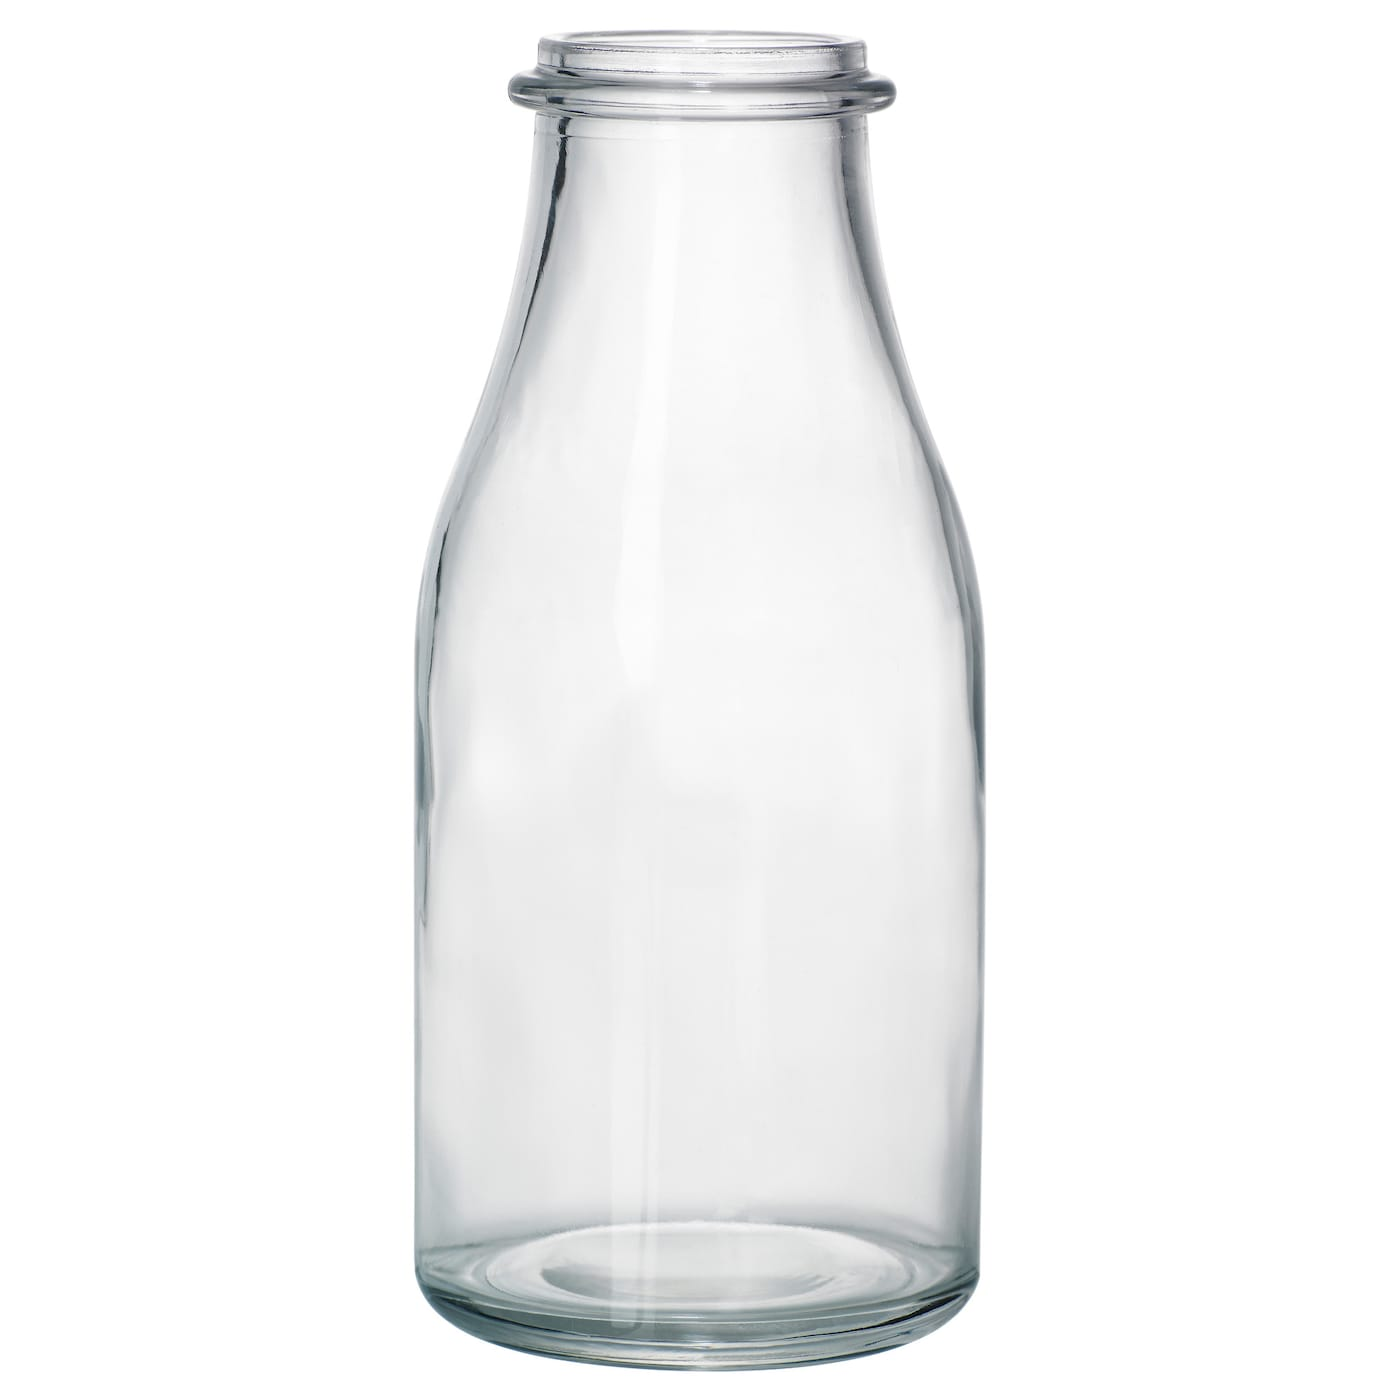 Ensidig vase clear glass 18 cm ikea for Botellas de cristal ikea